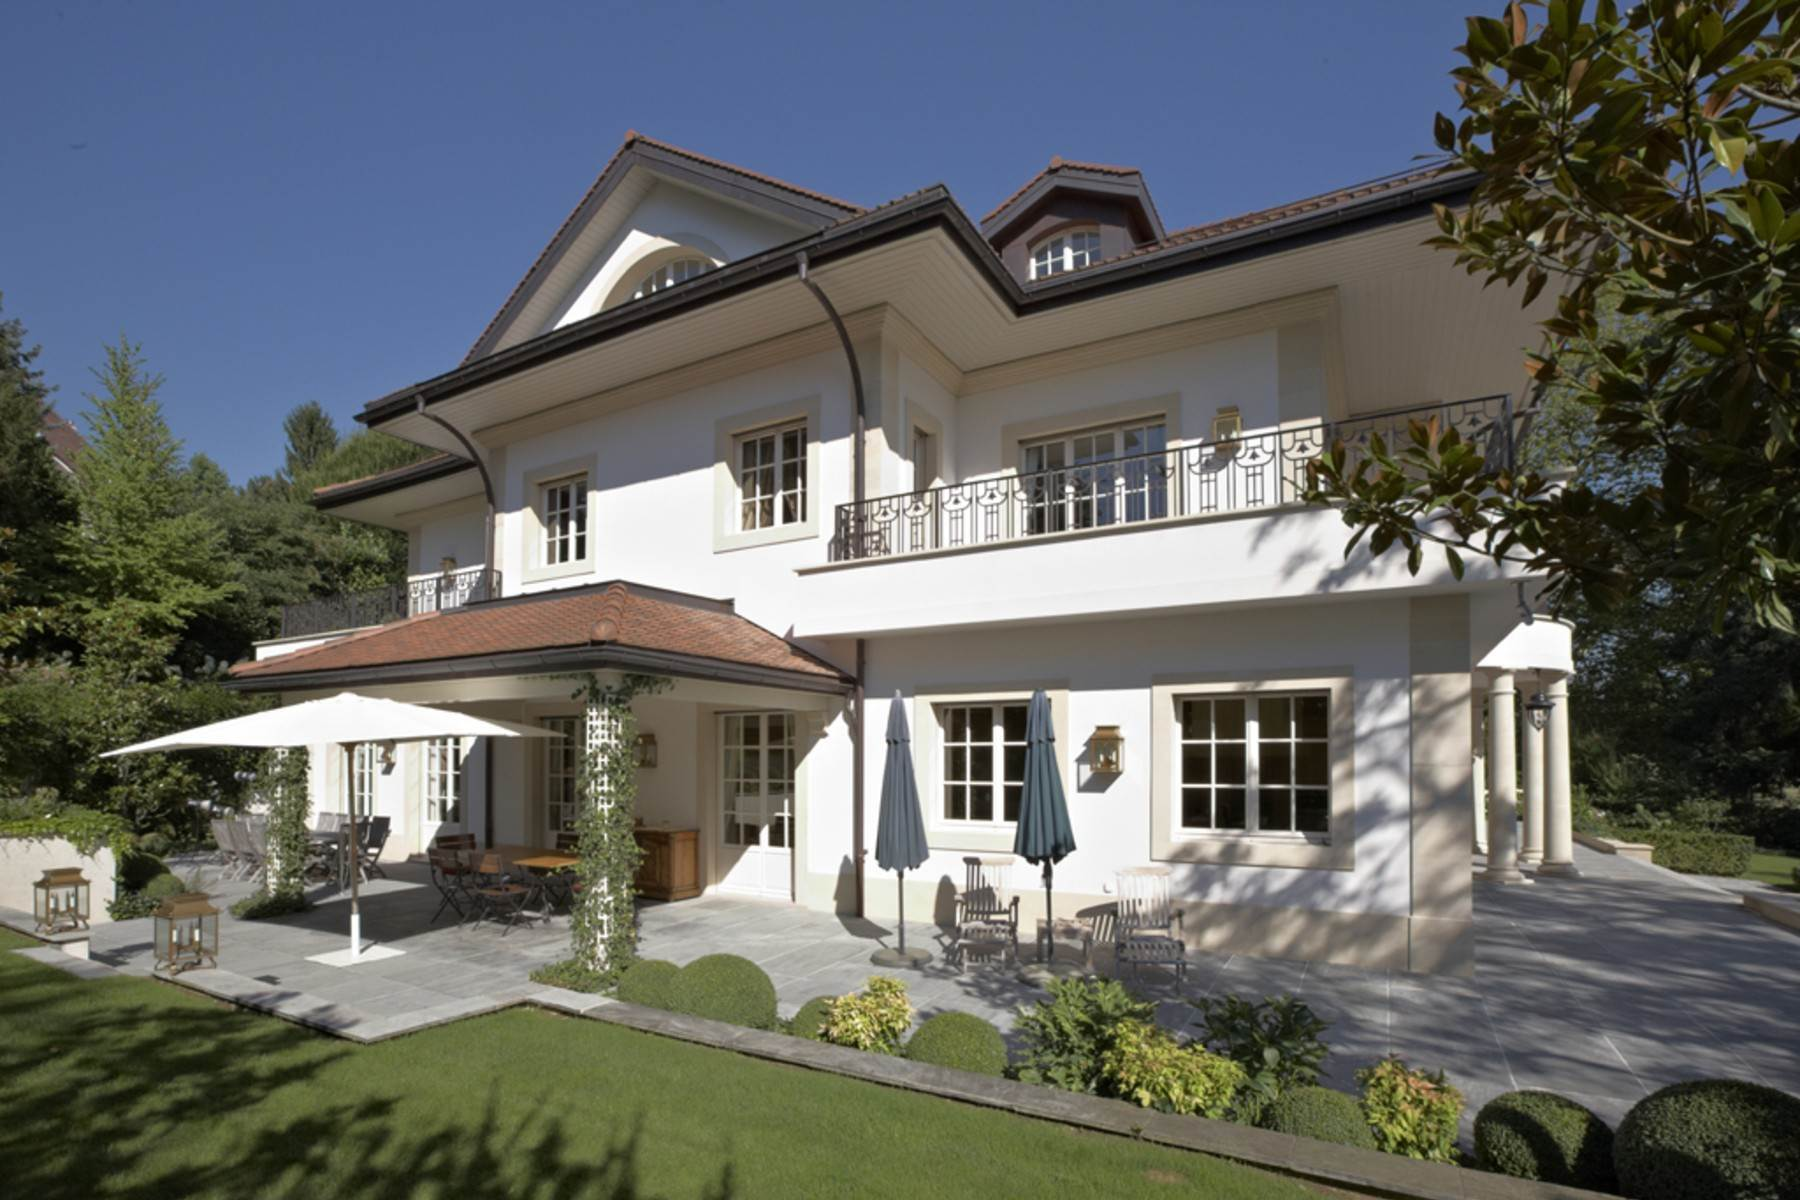 Single Family Homes for Active at Superb mansion close to Denantou park Lausanne Lausanne, Vaud 1006 Switzerland